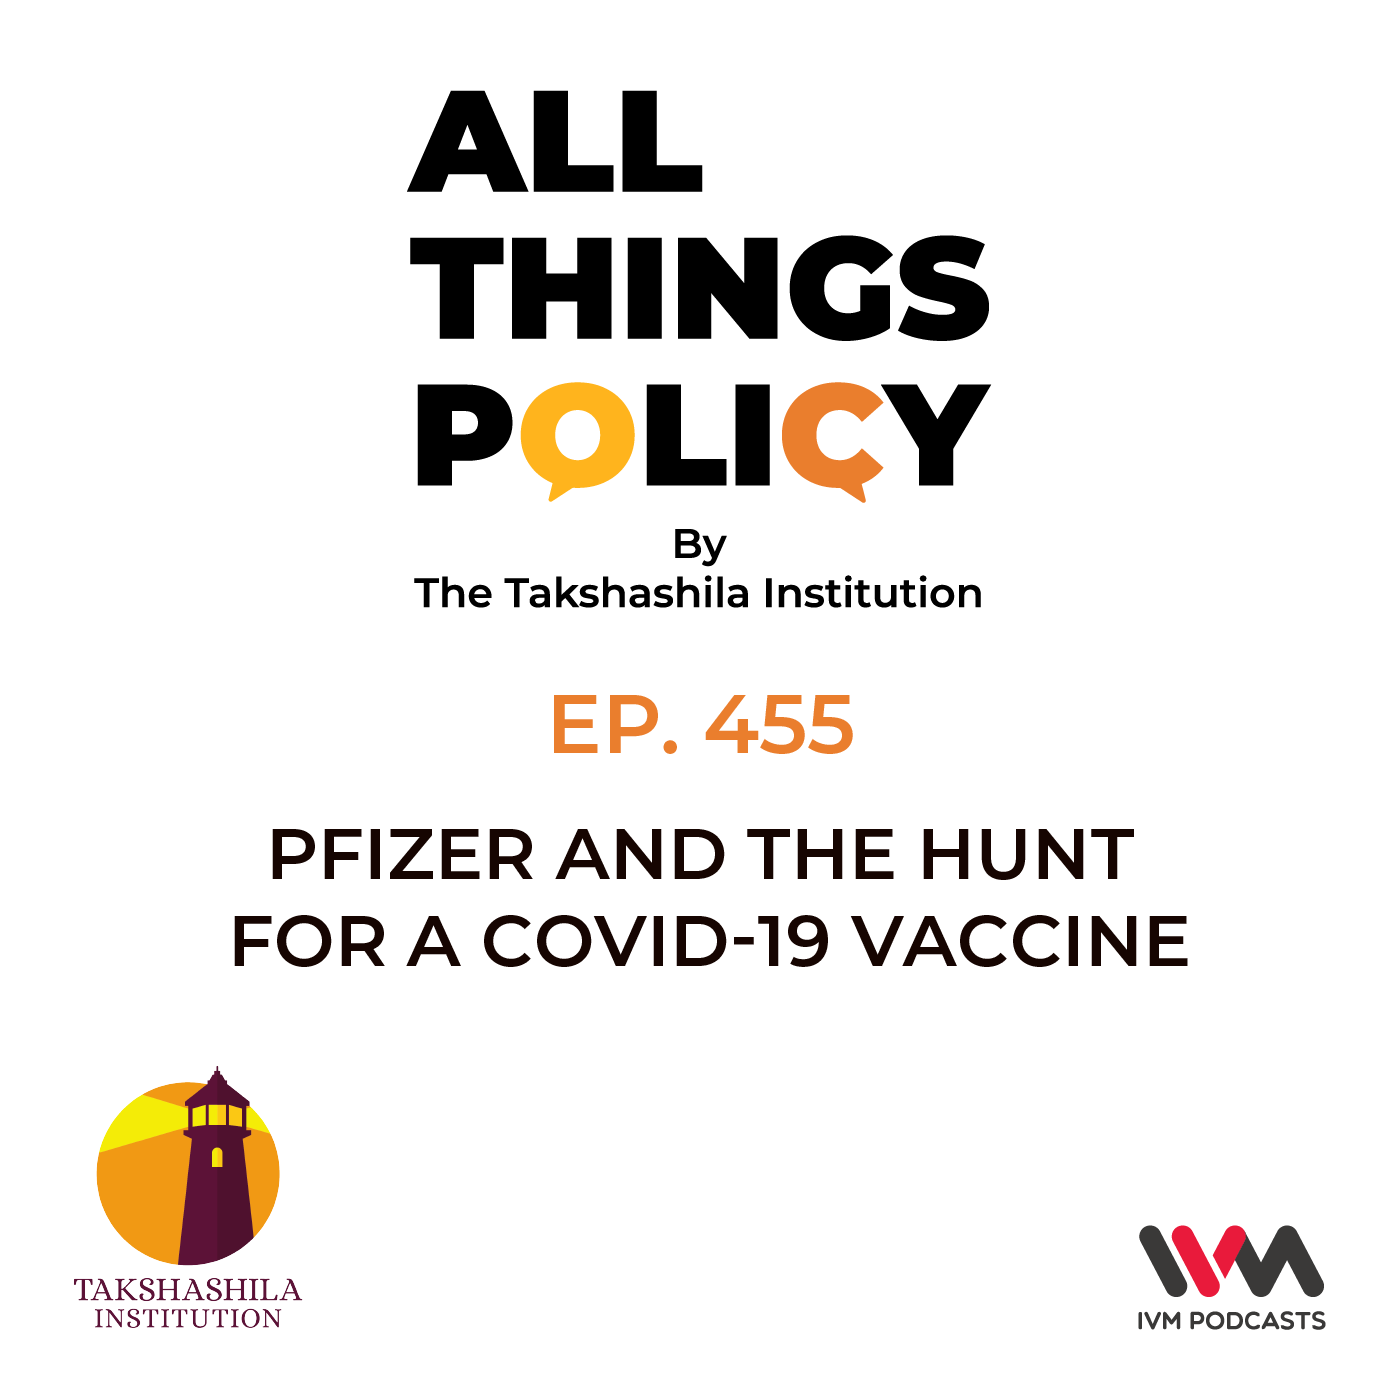 Ep. 455: Pfizer and the Hunt for a COVID-19 Vaccine